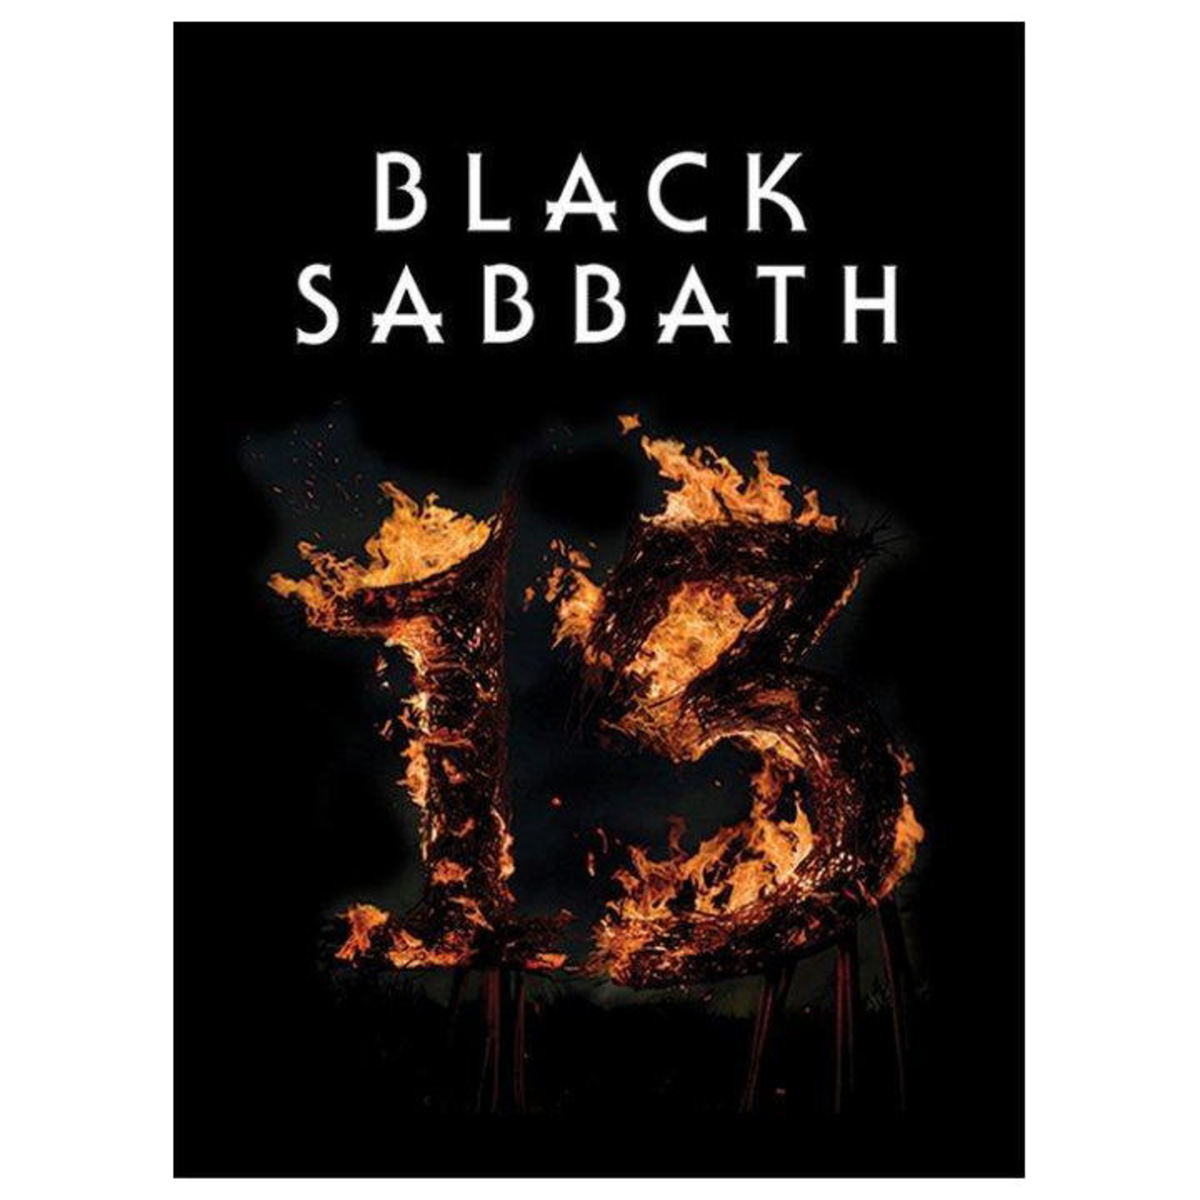 obraz PYRAMID POSTERS Black Sabbath 13